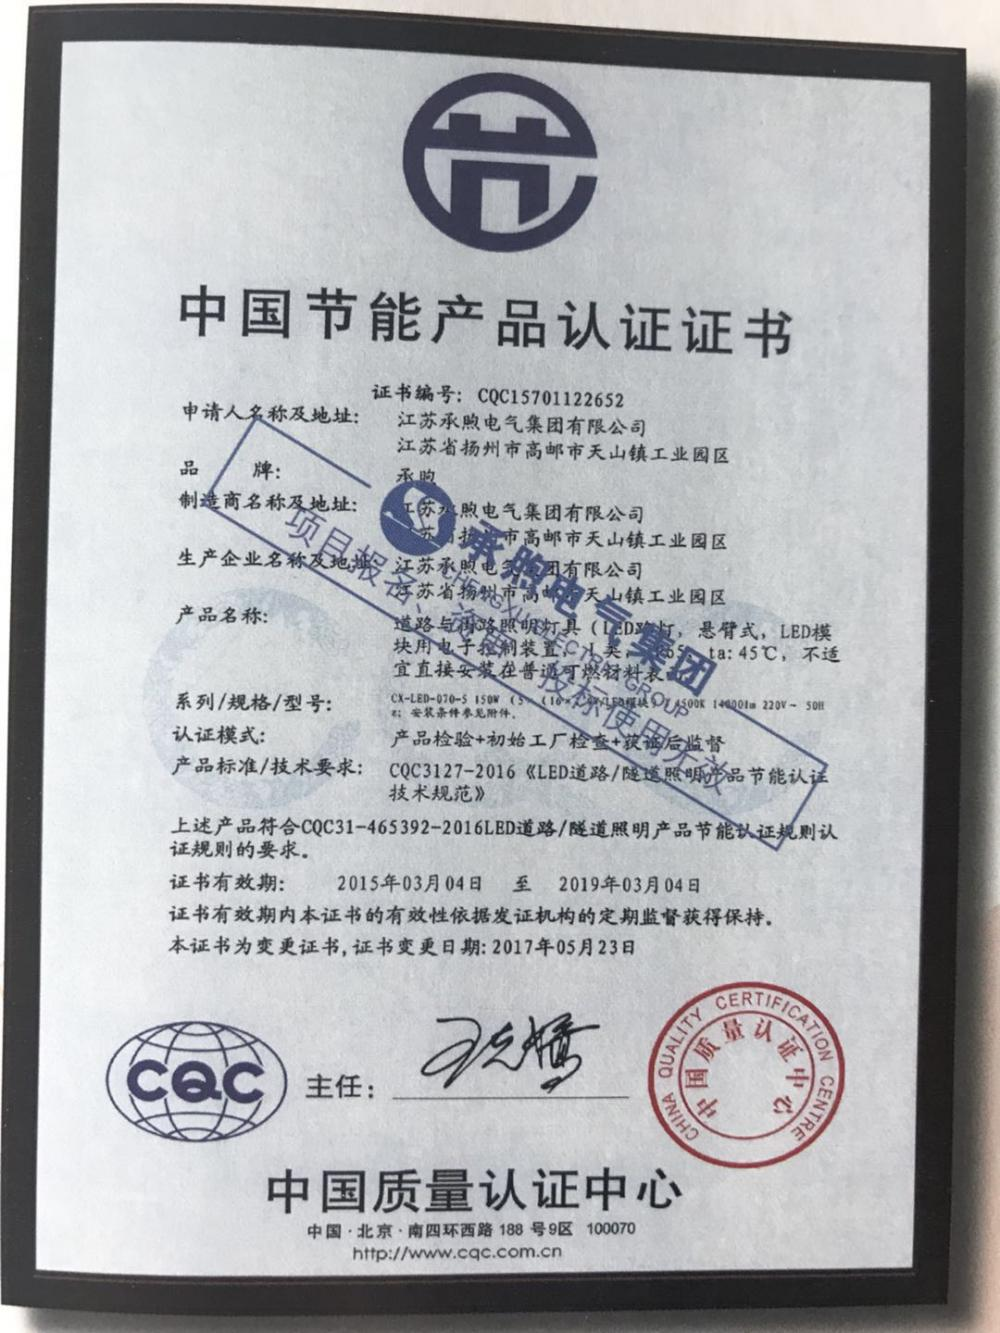 China energy conservation product authentication